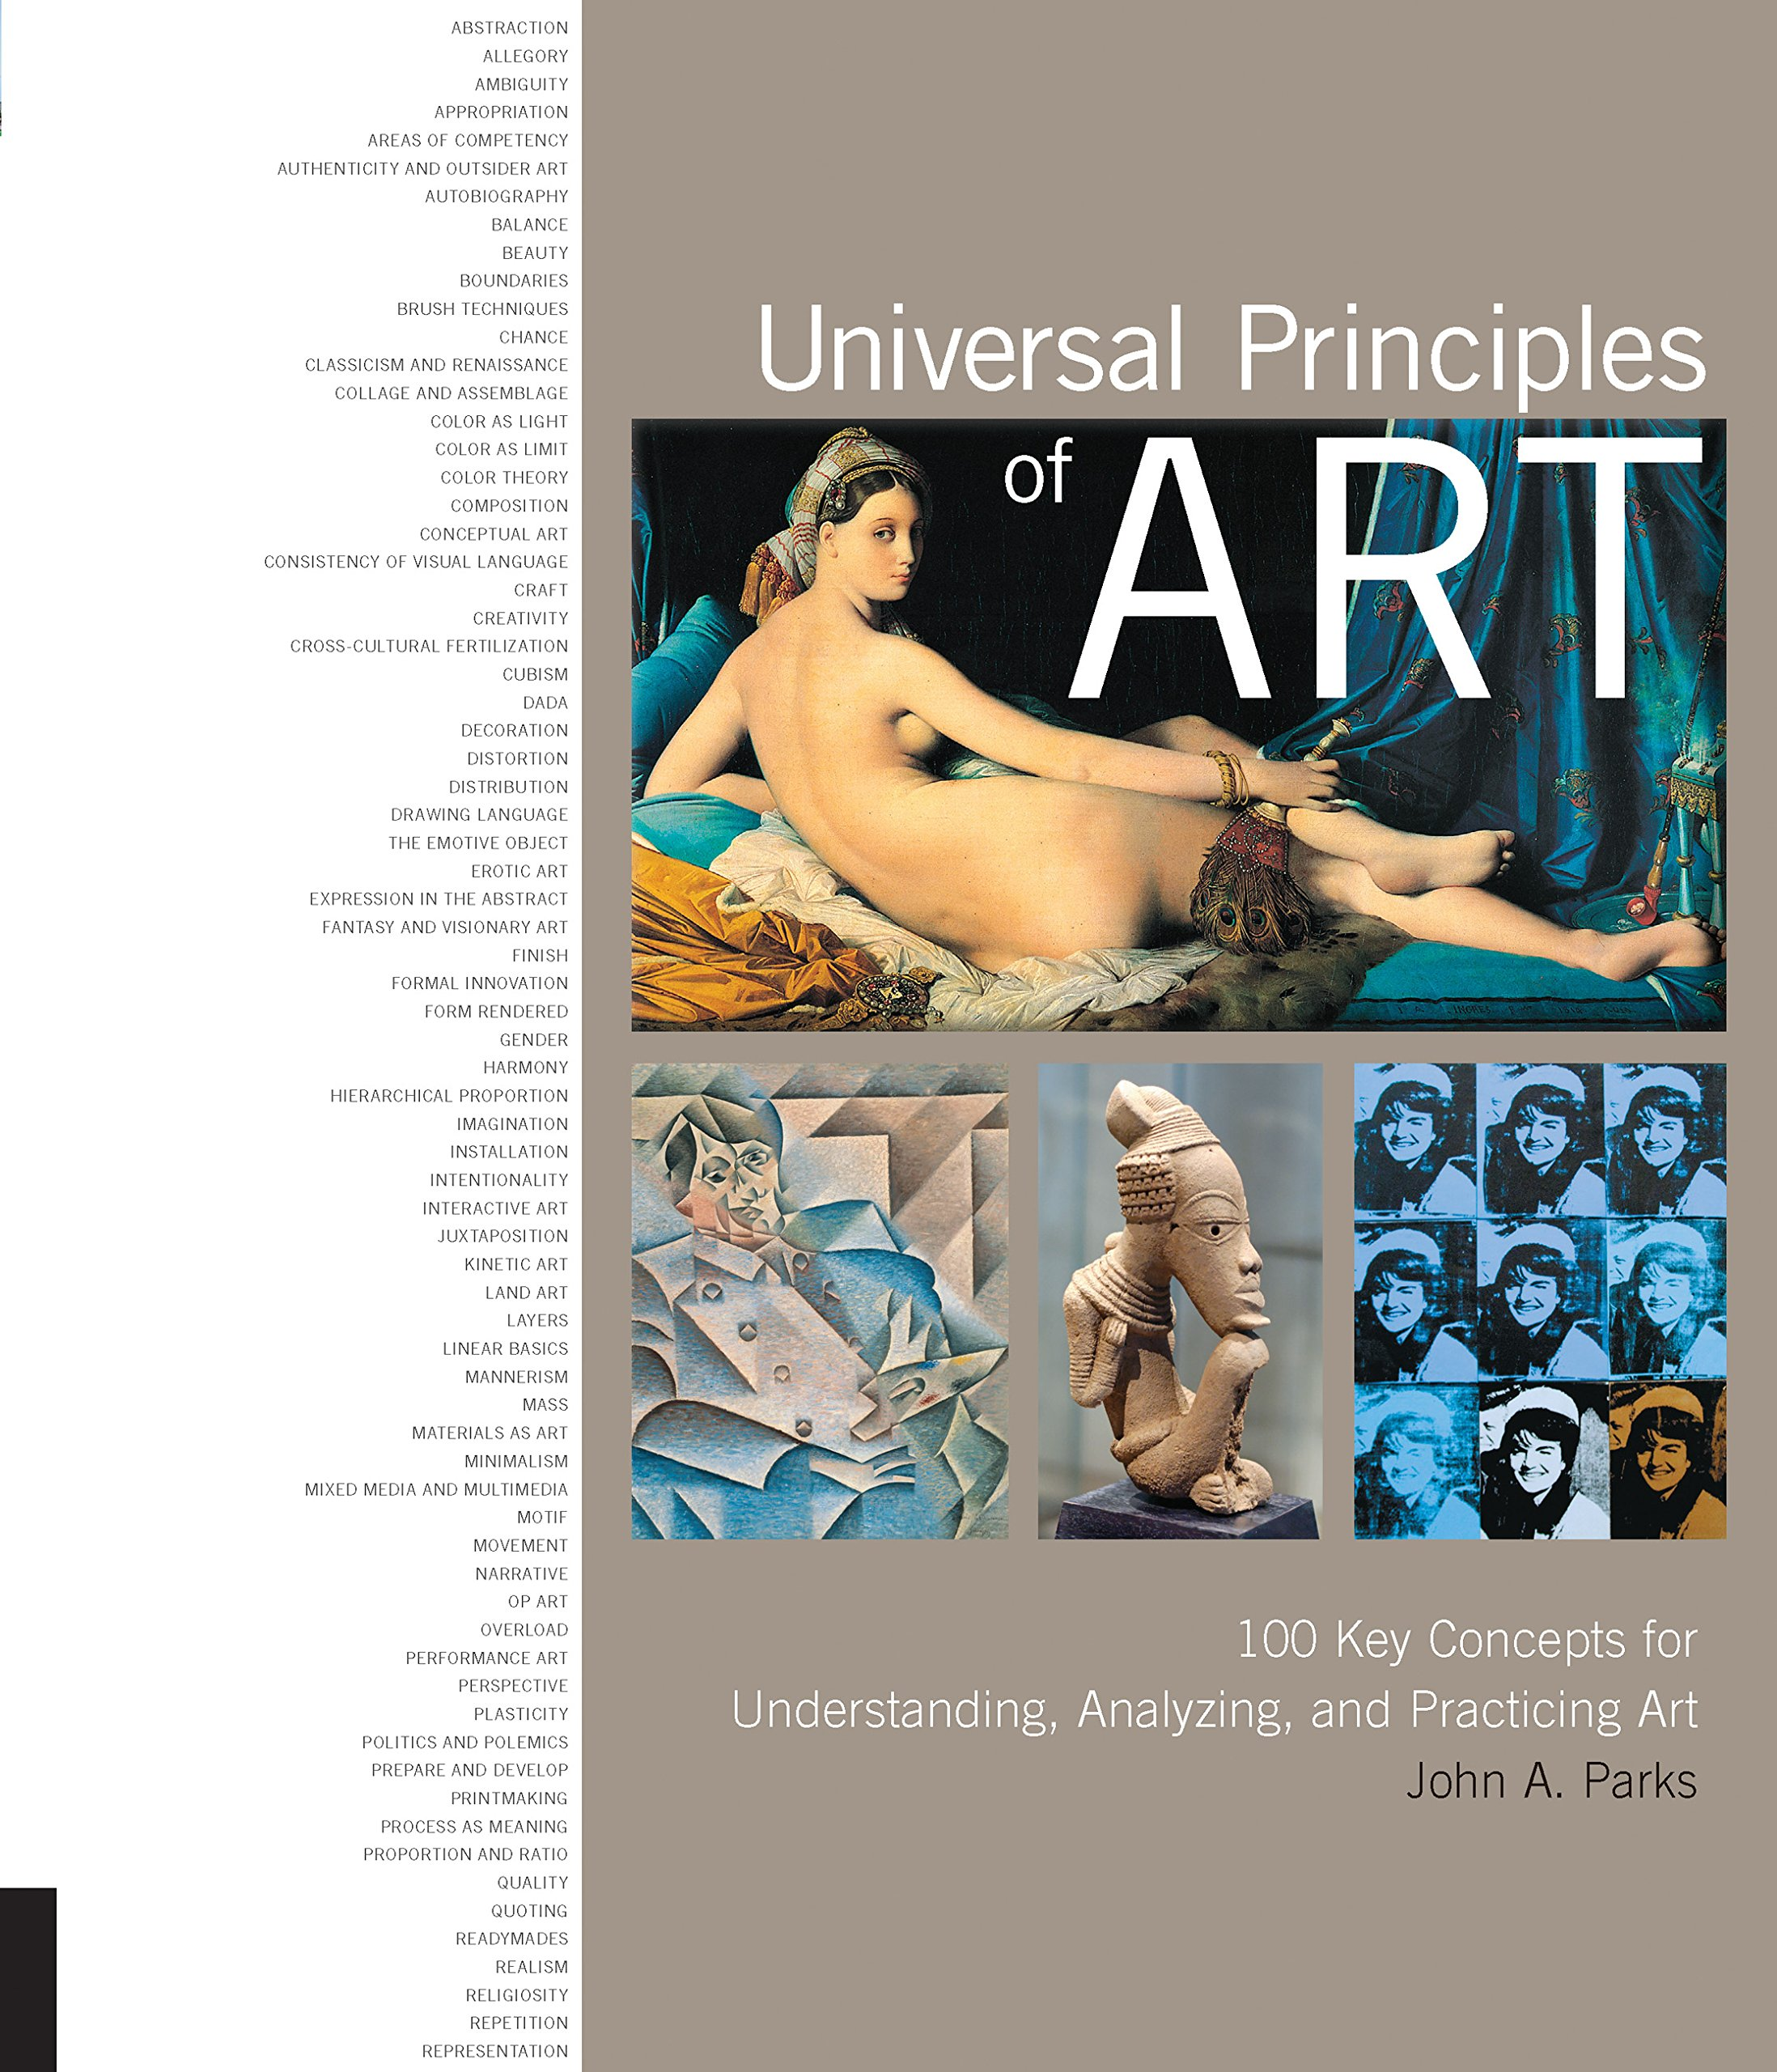 Universal Principles of Art: 100 Key Concepts for Understanding, Analyzing, and Practicing Art ebook